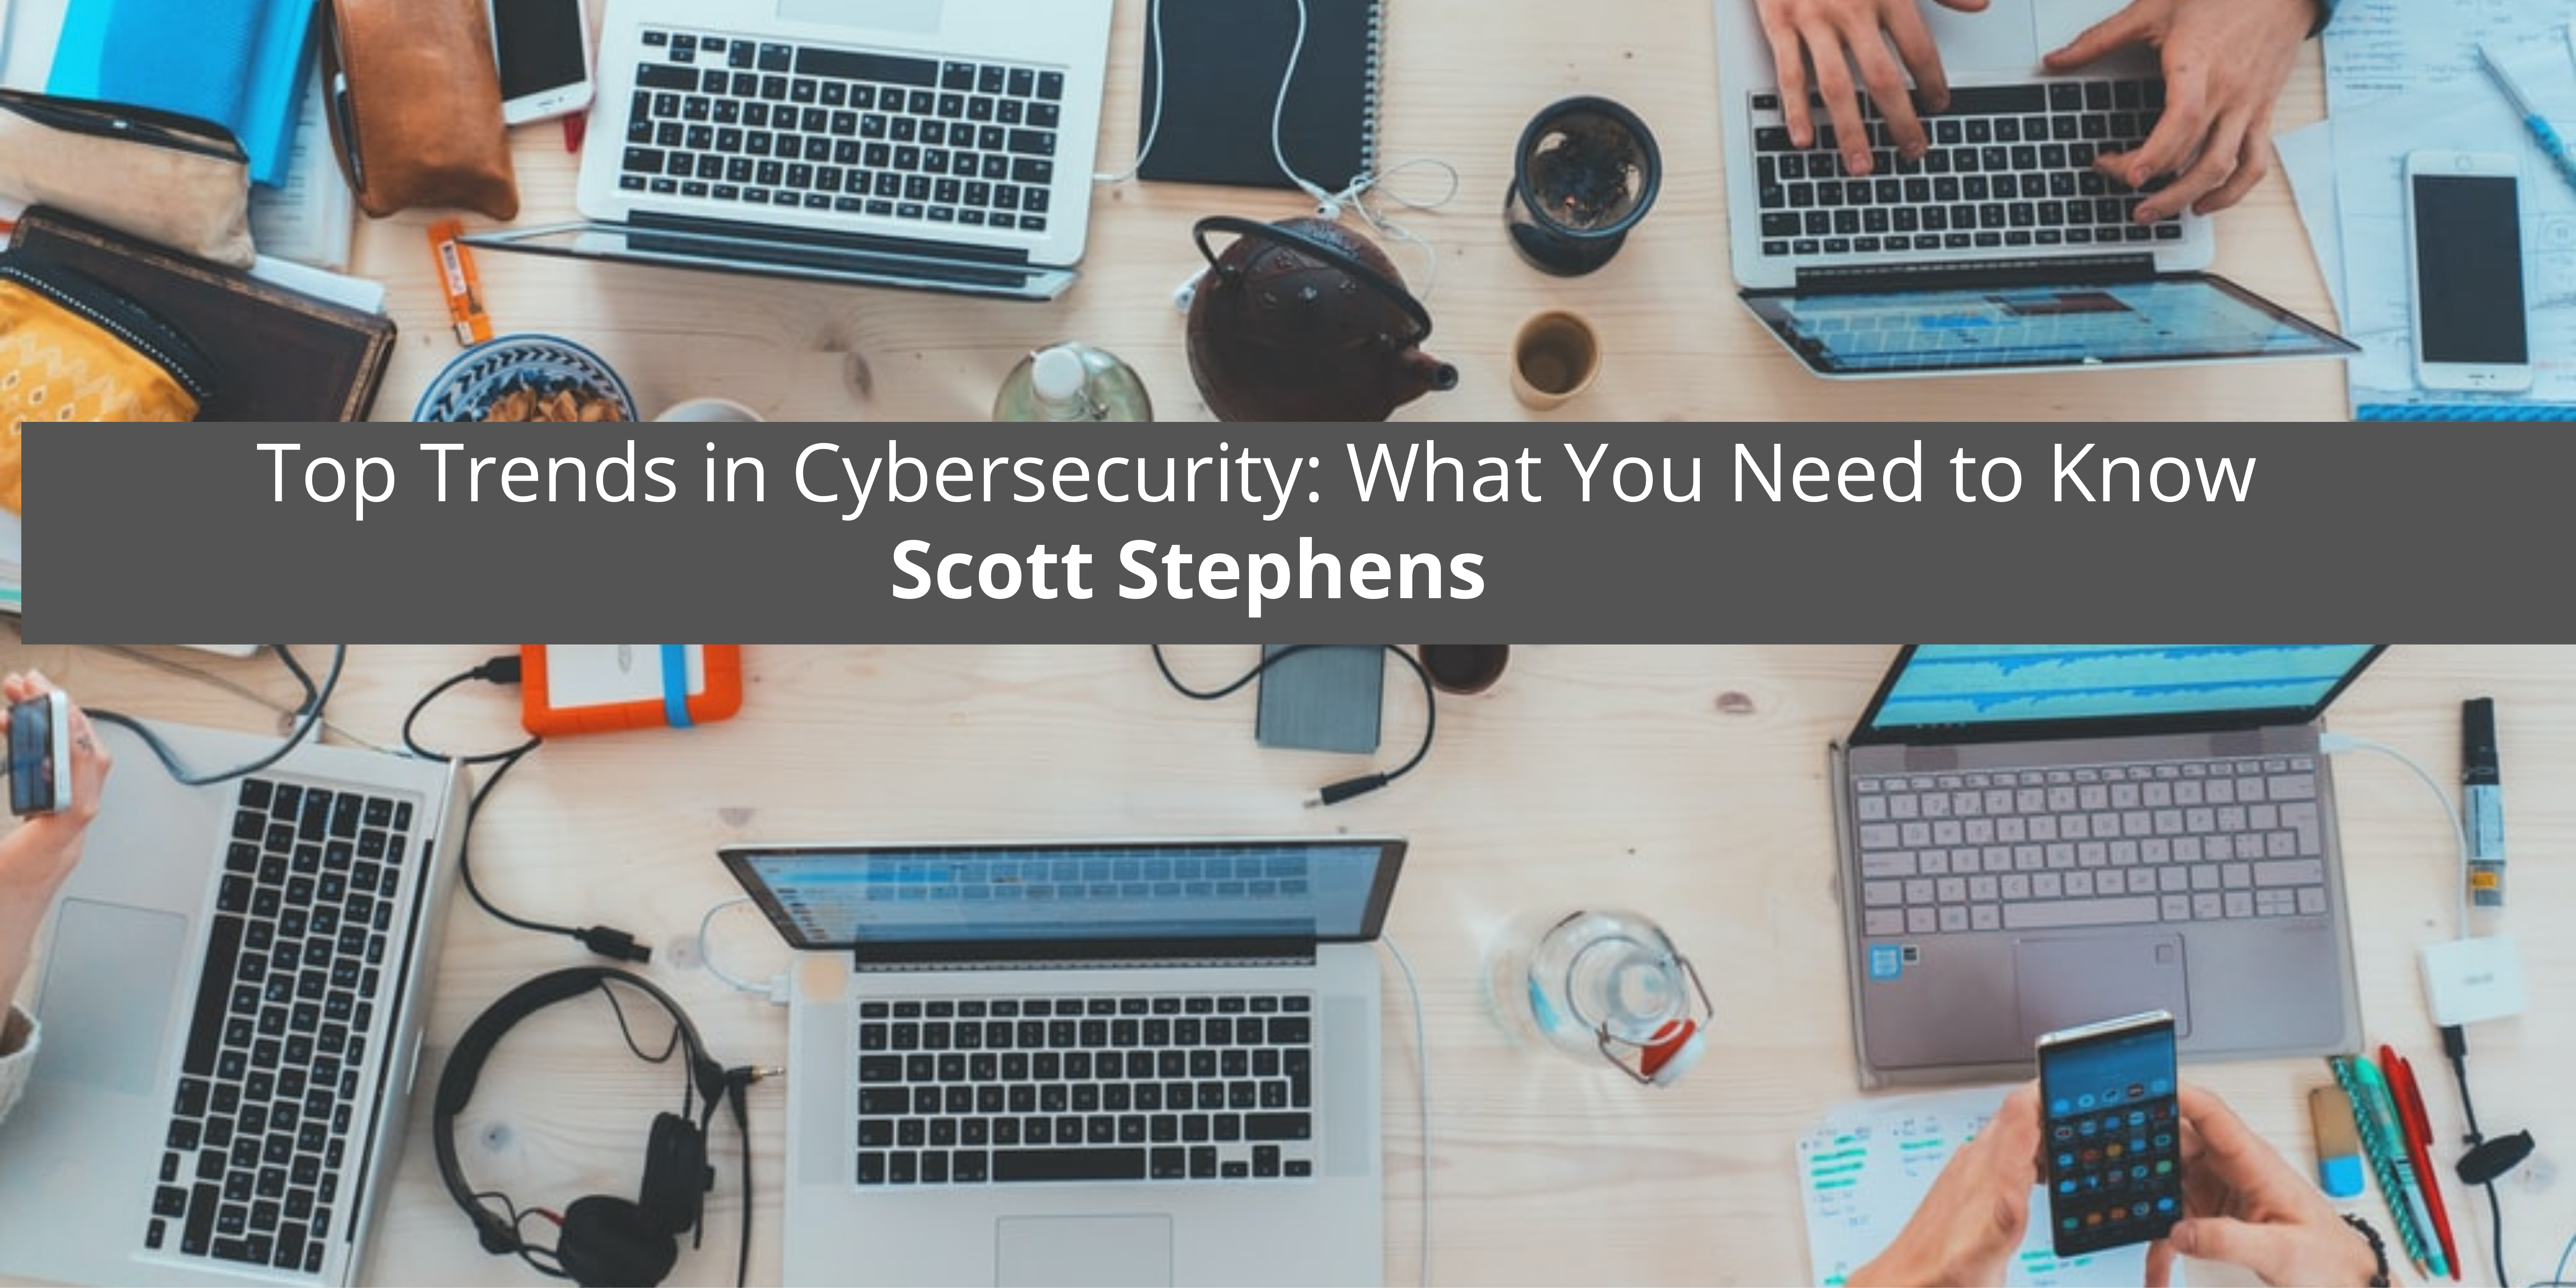 Top Trends in Cybersecurity: What You Need to Know